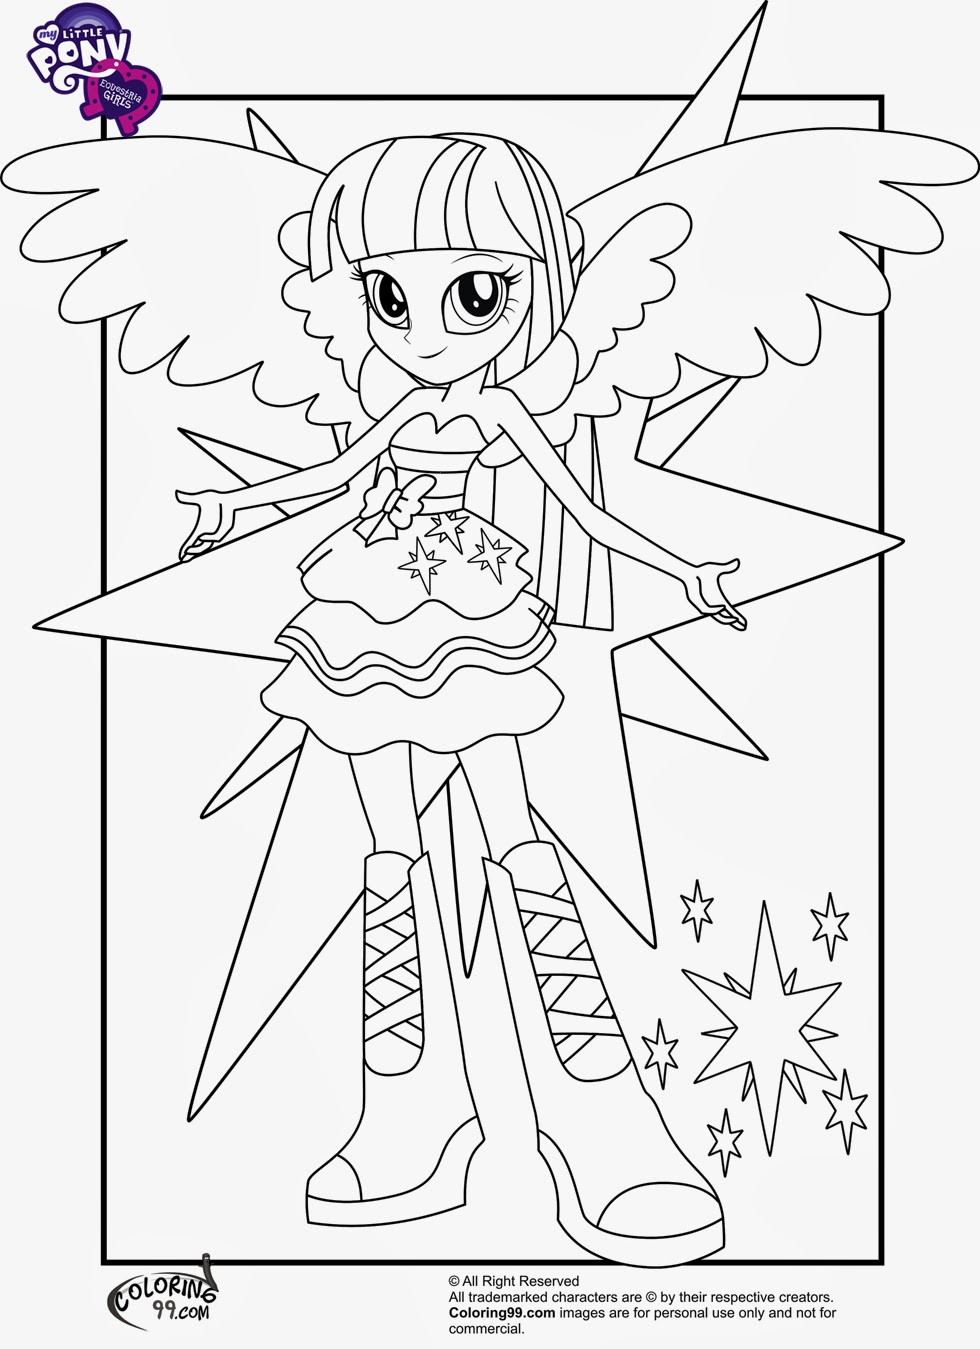 Free Coloring Pages Of Mlp Equestria Girls Coloring Pages Of My Pony Equestria Free